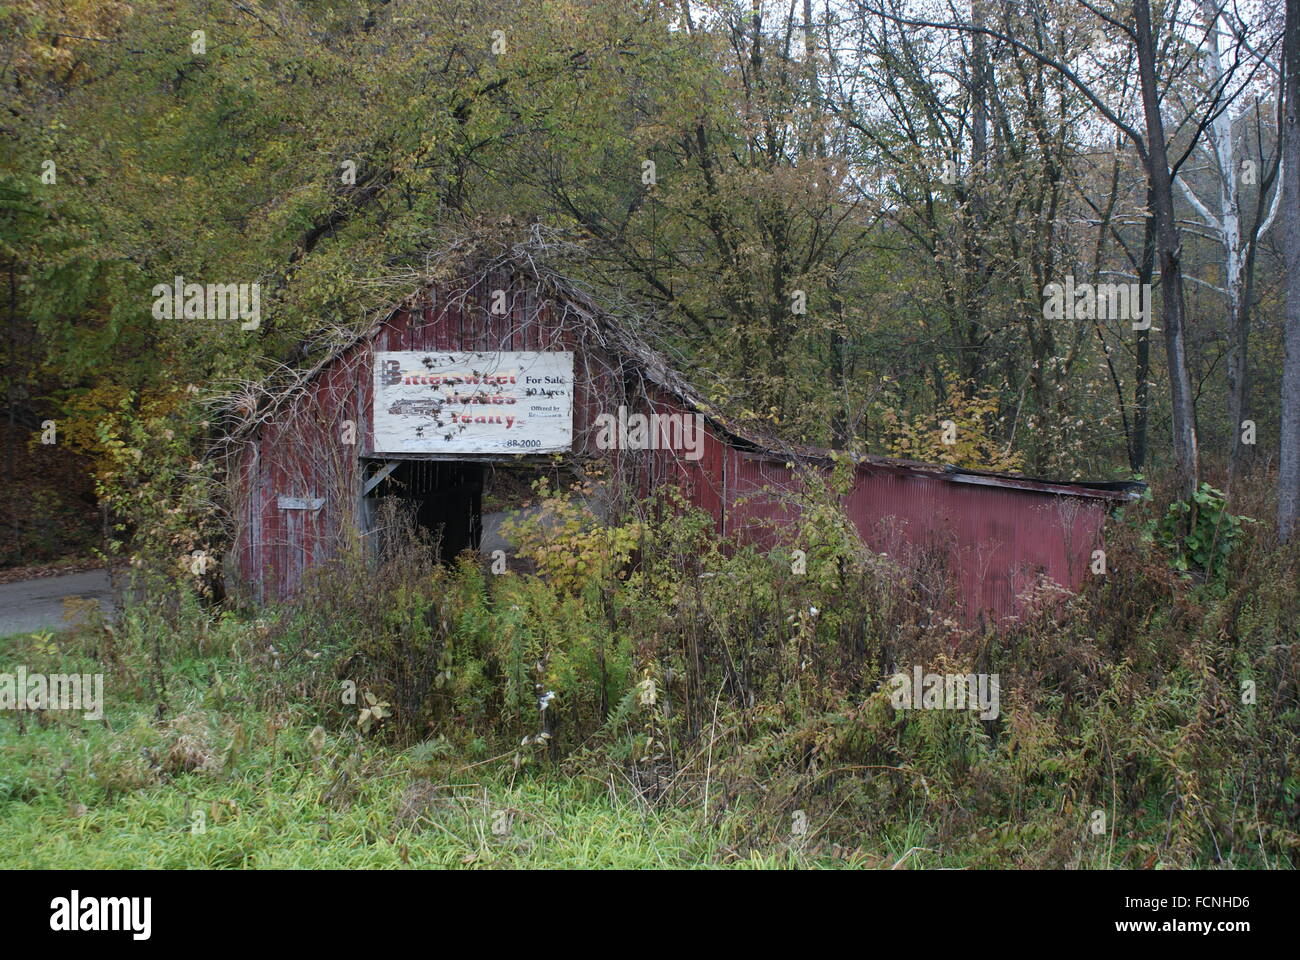 An old abandon barn covered with weeds and vines. - Stock Image